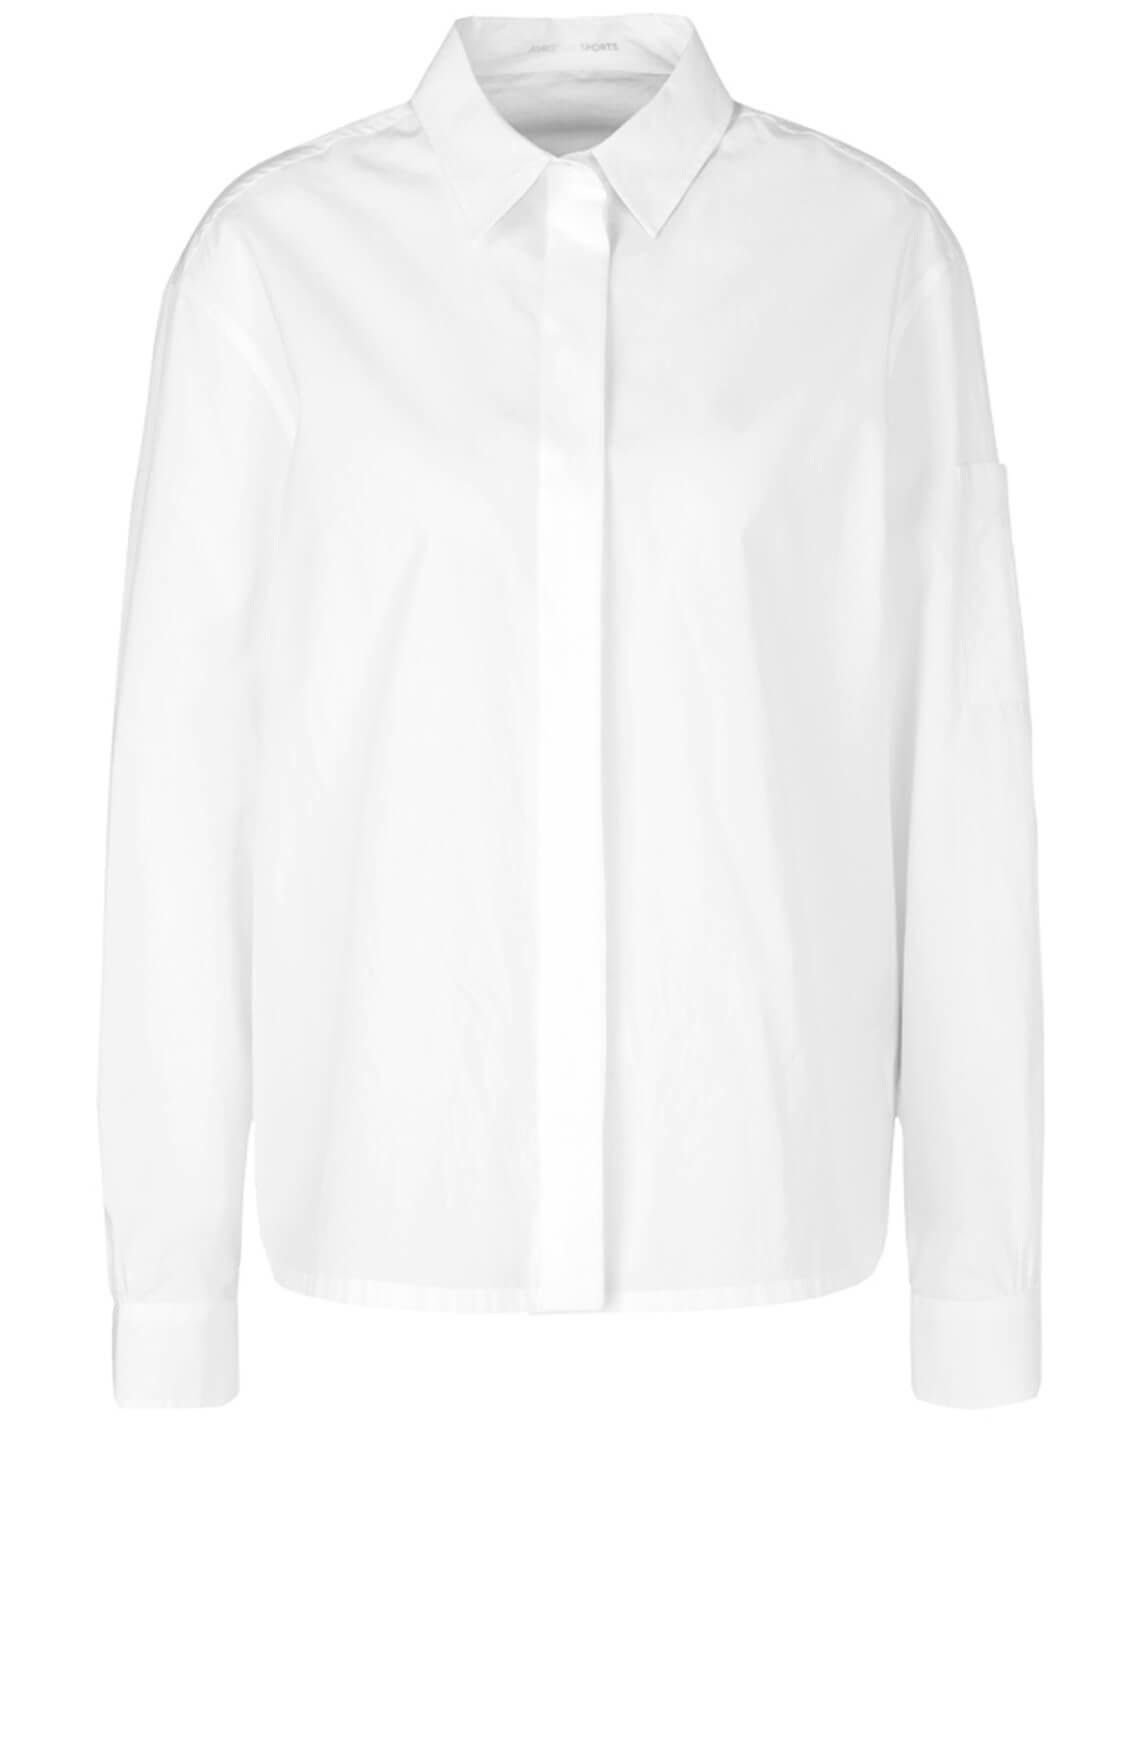 Marccain Sports Dames Blouse met tunnelkoord wit